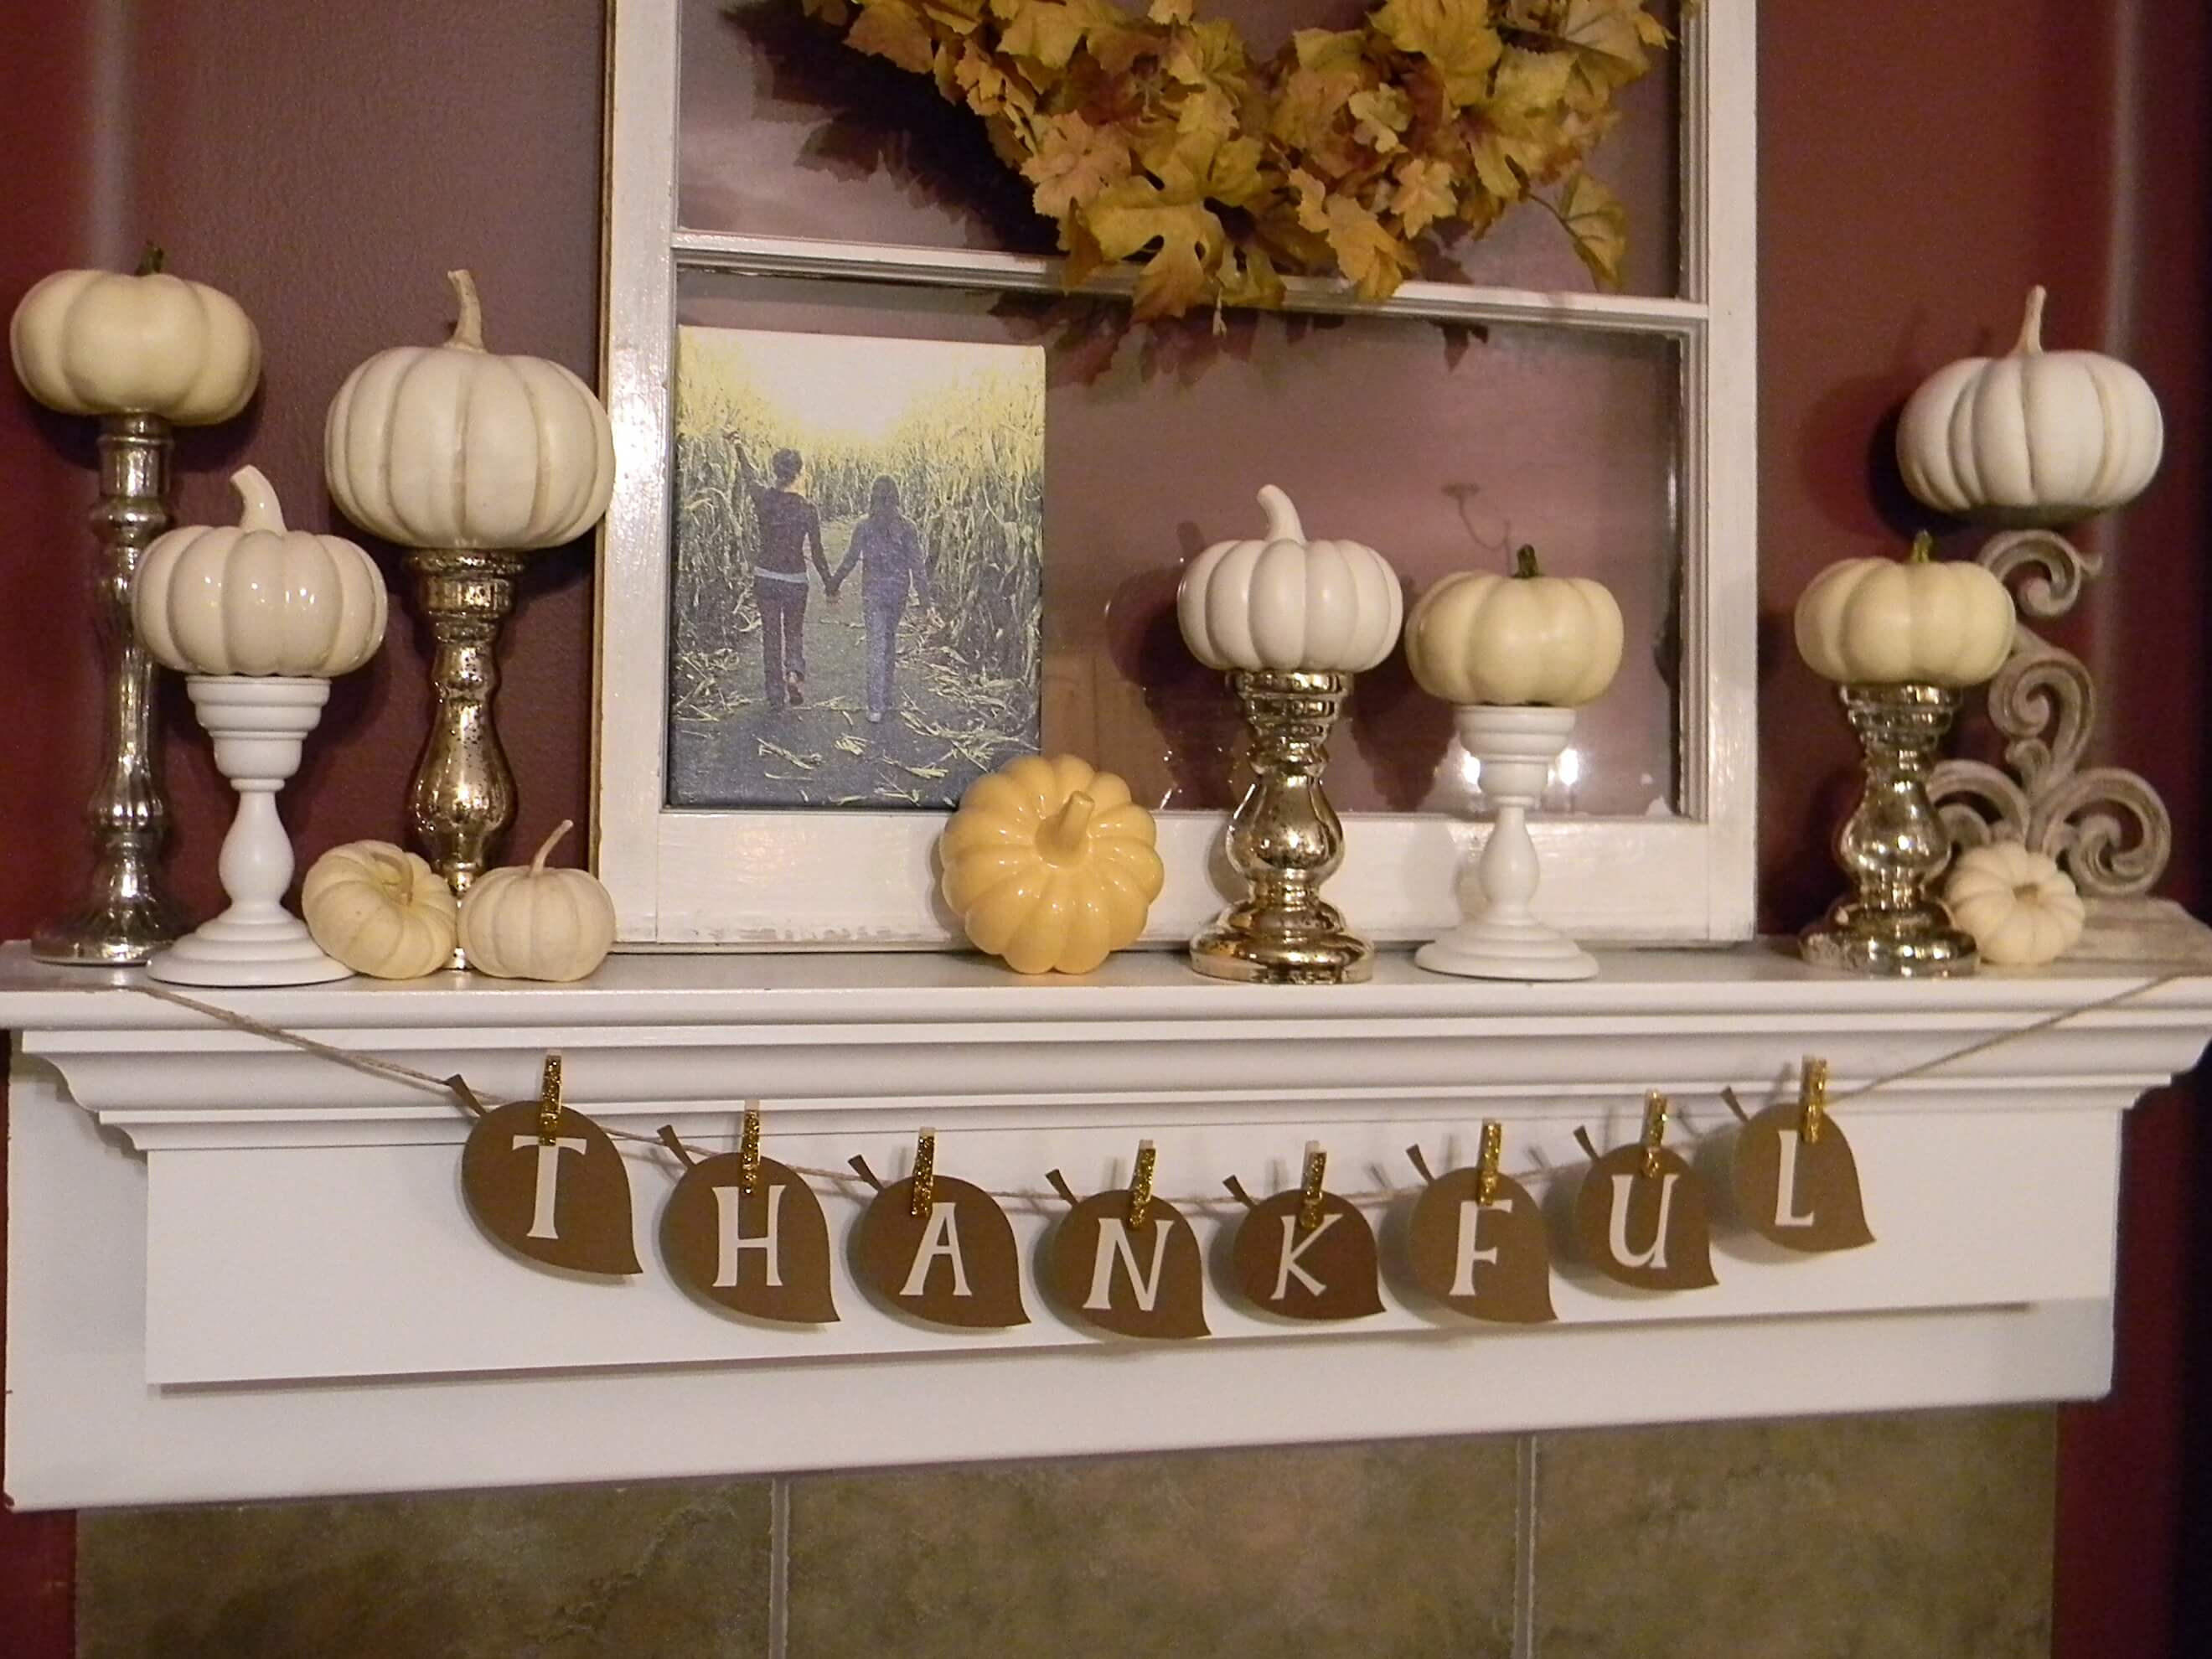 Fireplace mantel decor in the form of white pumpkins everywhere